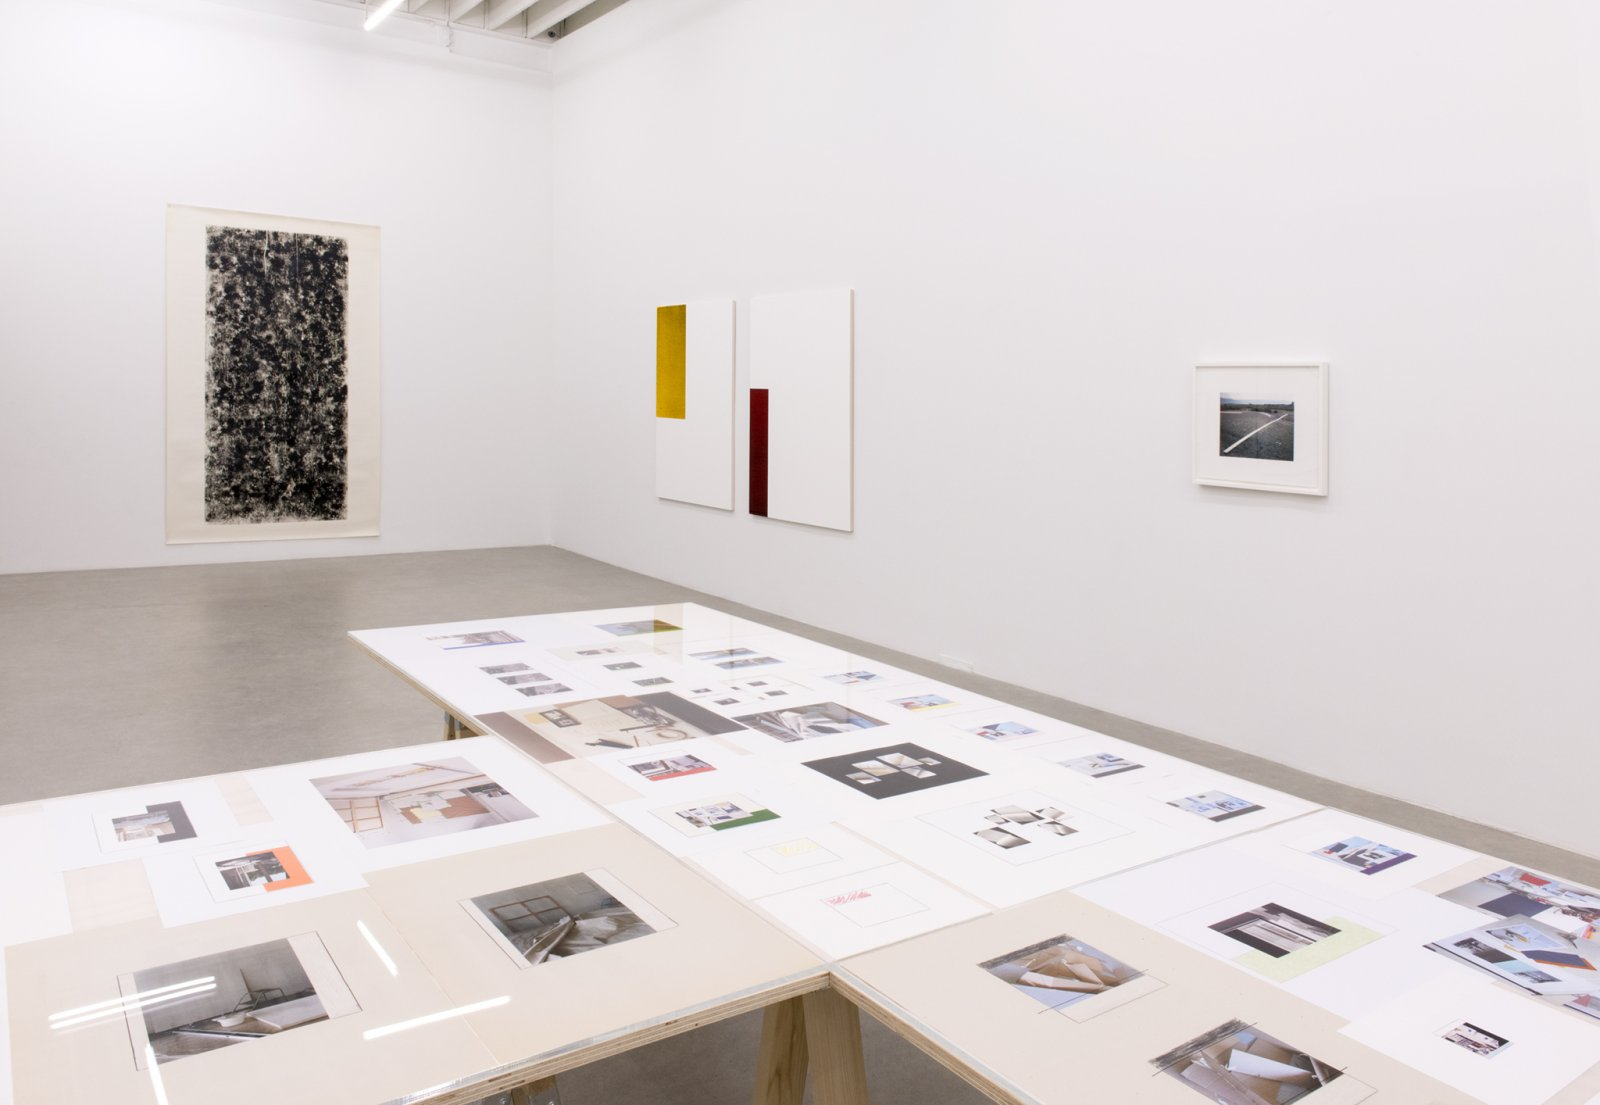 Ian Wallace, installation view, Street Floor Table Page Wall Canvas, 1969-2017, Catriona Jeffries, 2017 by Ian Wallace